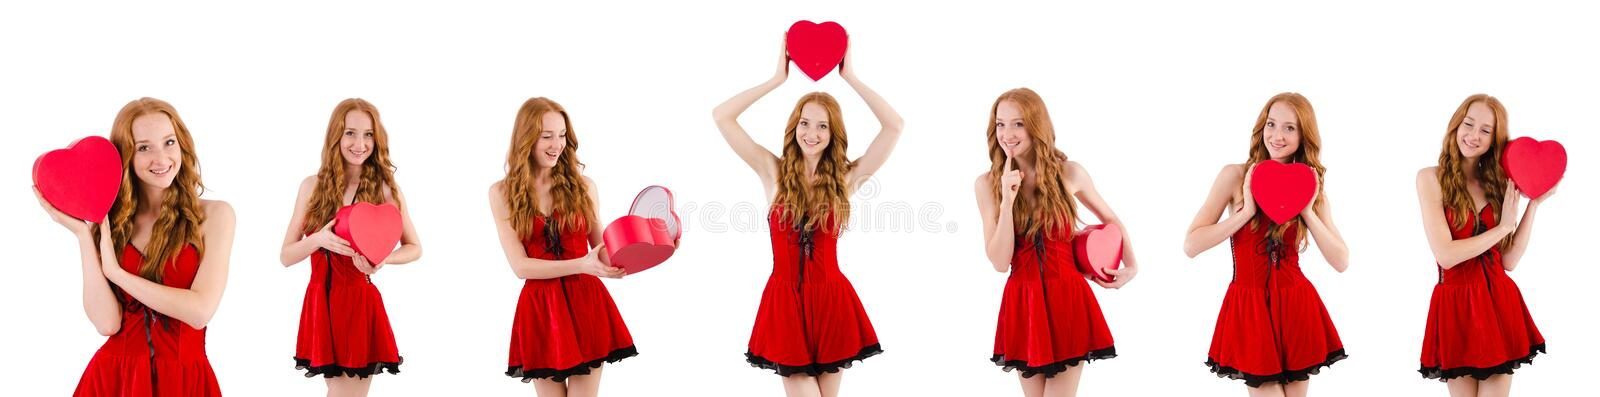 The young girl in red dress with heart casket isolated on white. Young girl in red dress with heart casket isolated on white royalty free stock photography